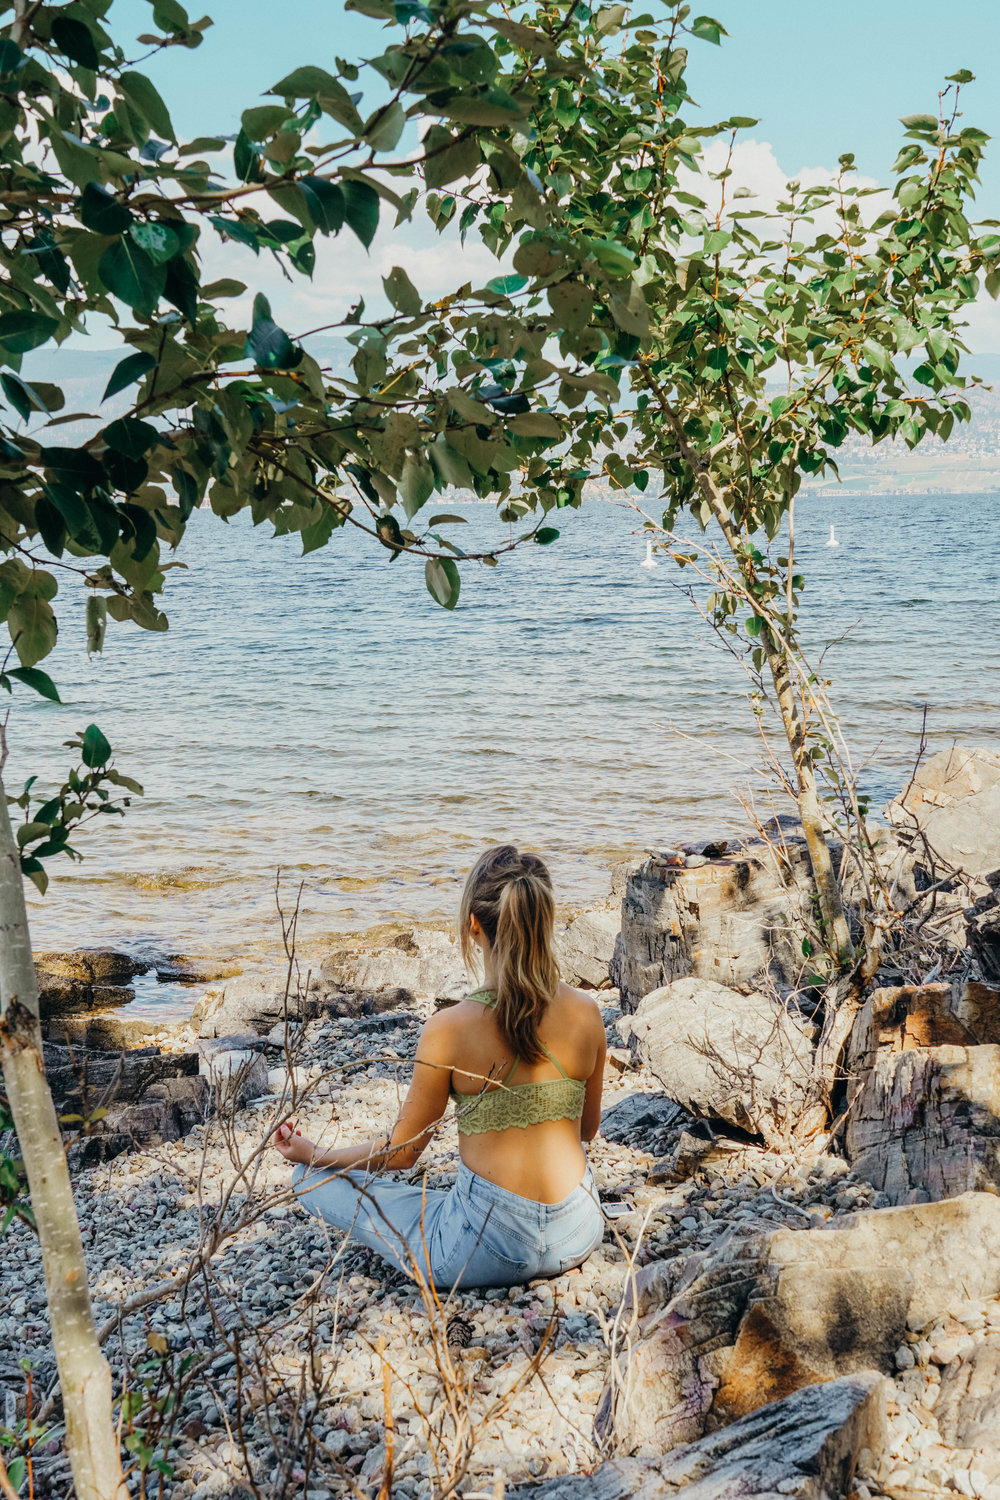 10-Minute Guided Meditation for Practicing Concentration